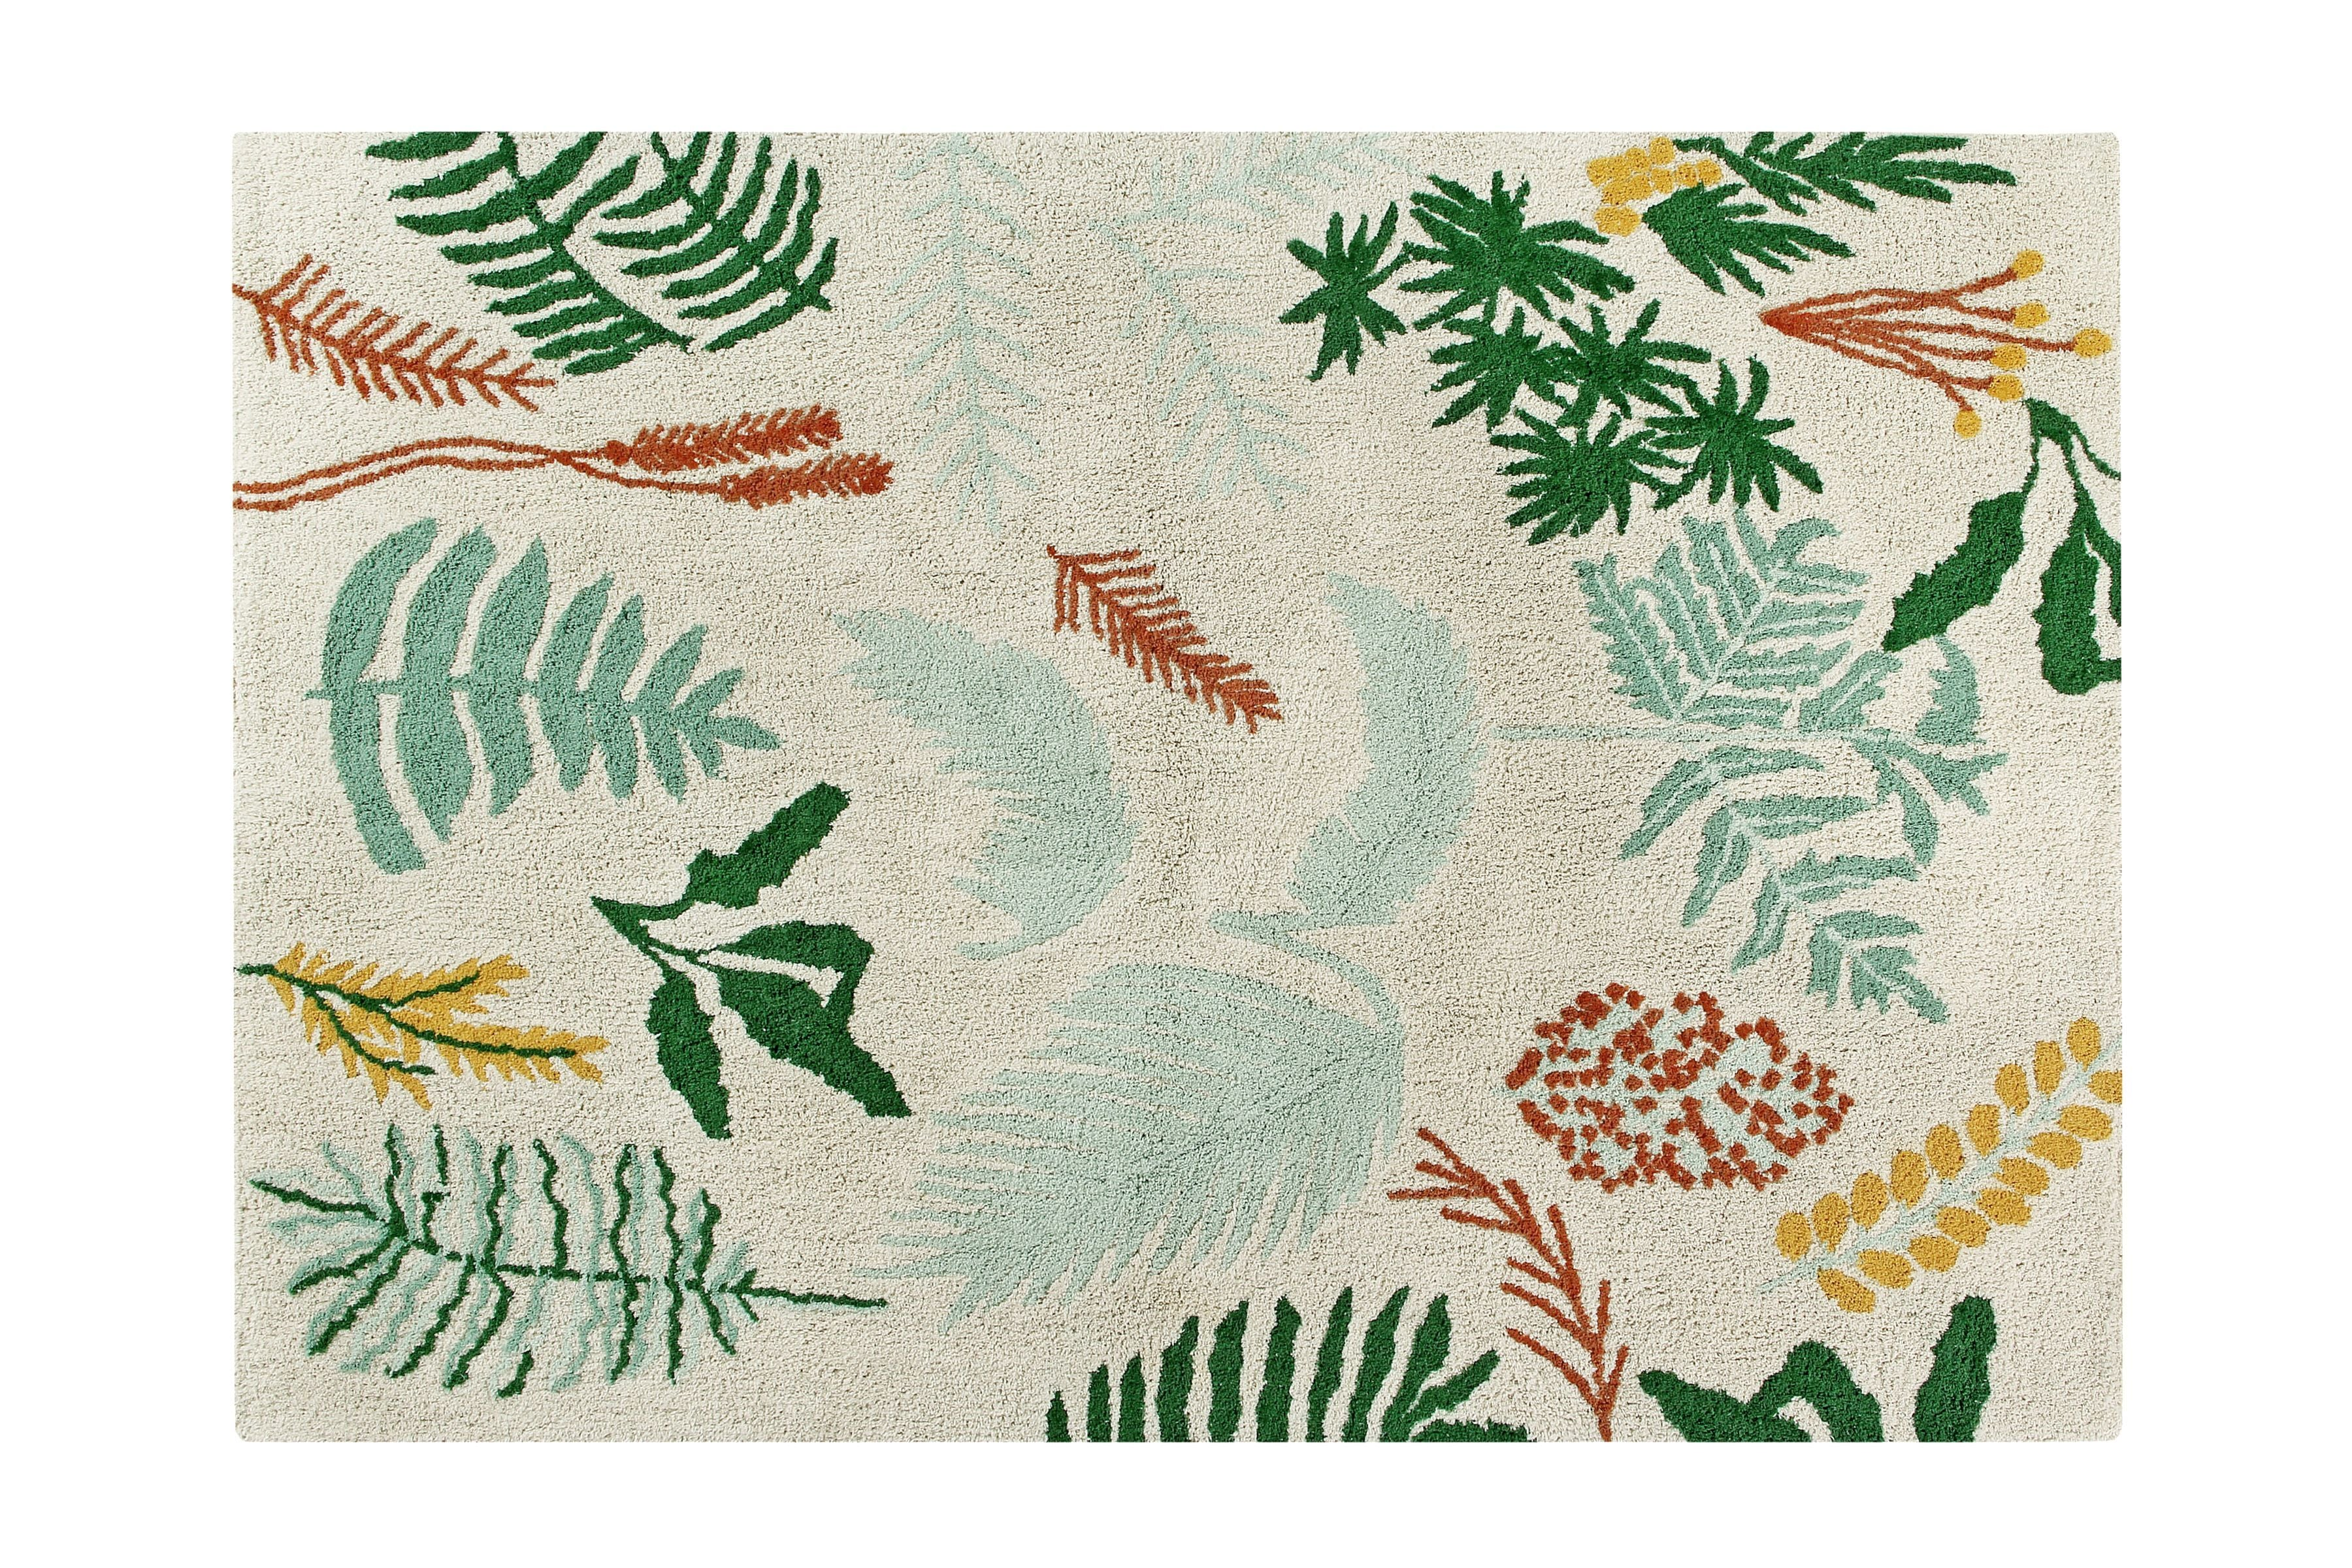 Botanic Plants Rug design by Lorena Canals